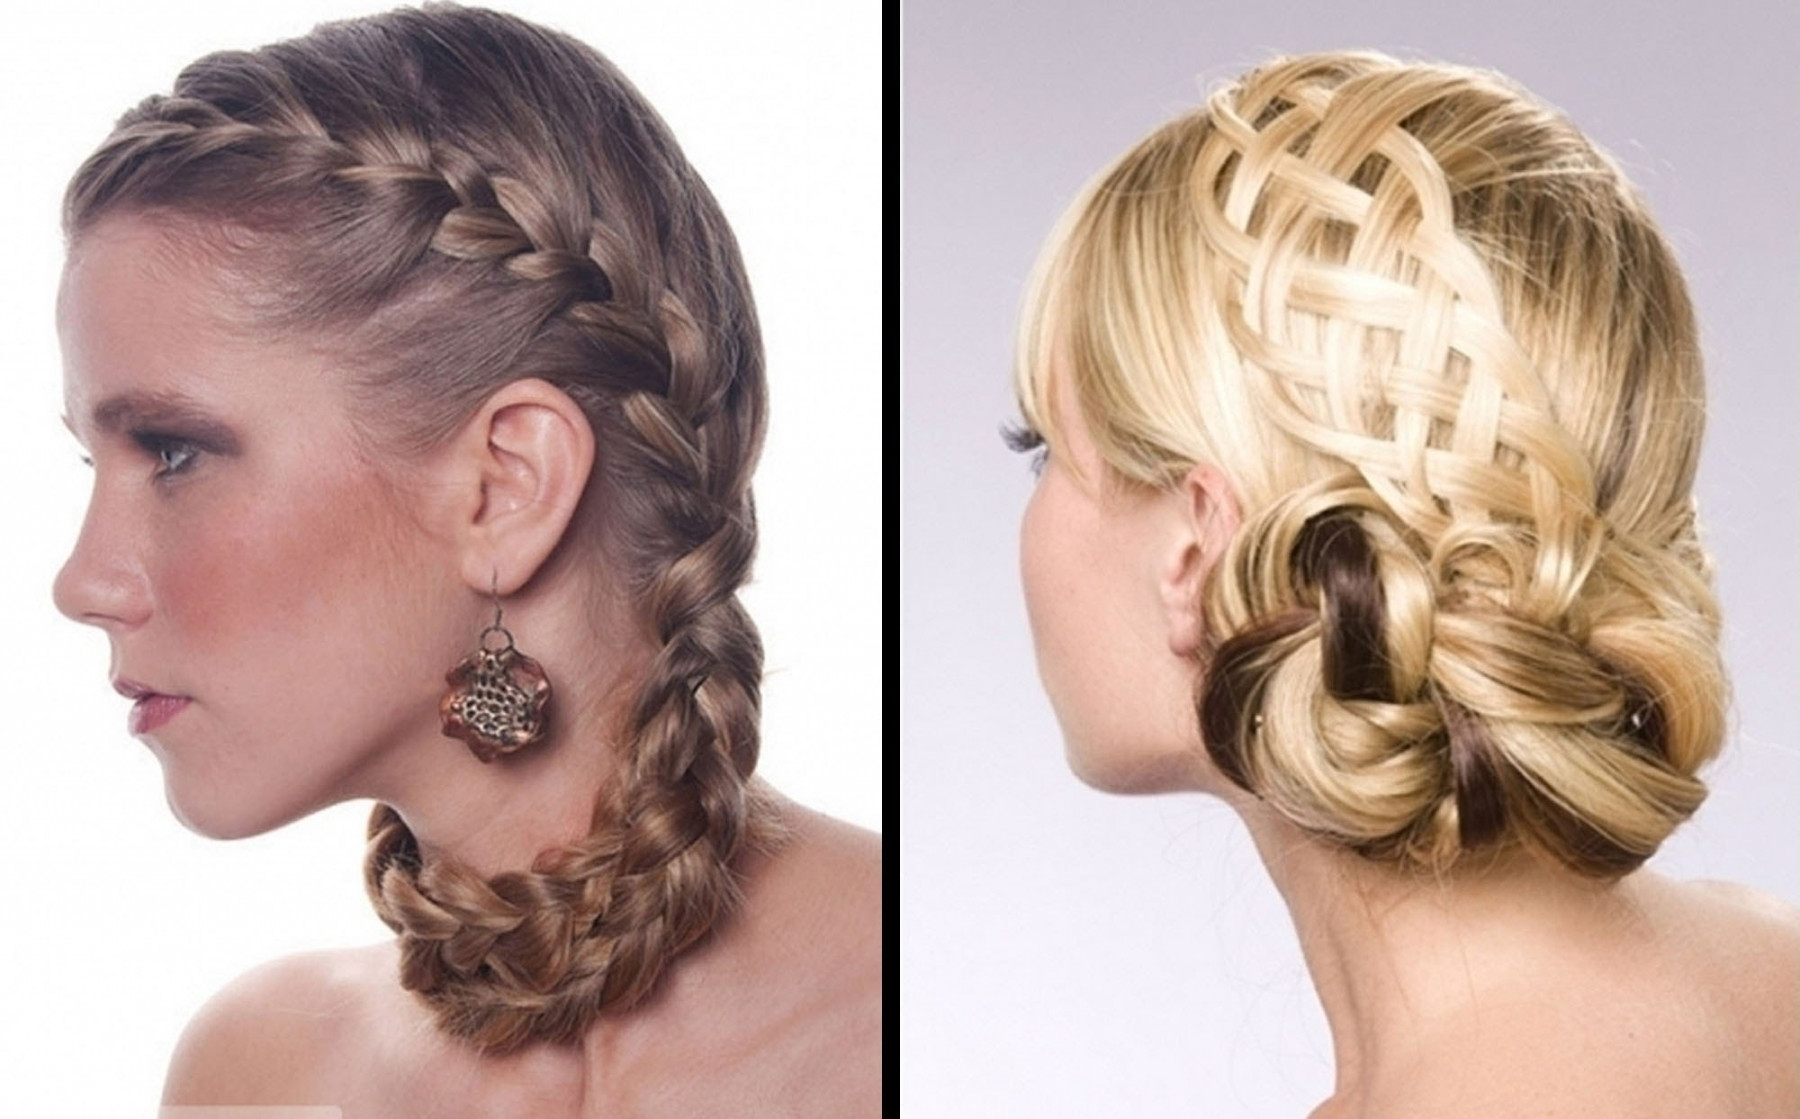 Prom Updo Hairstyles Short Hair 35 Top Beauty Prom Hairstyles For With Regard To Homecoming Updo Hairstyles (View 11 of 15)